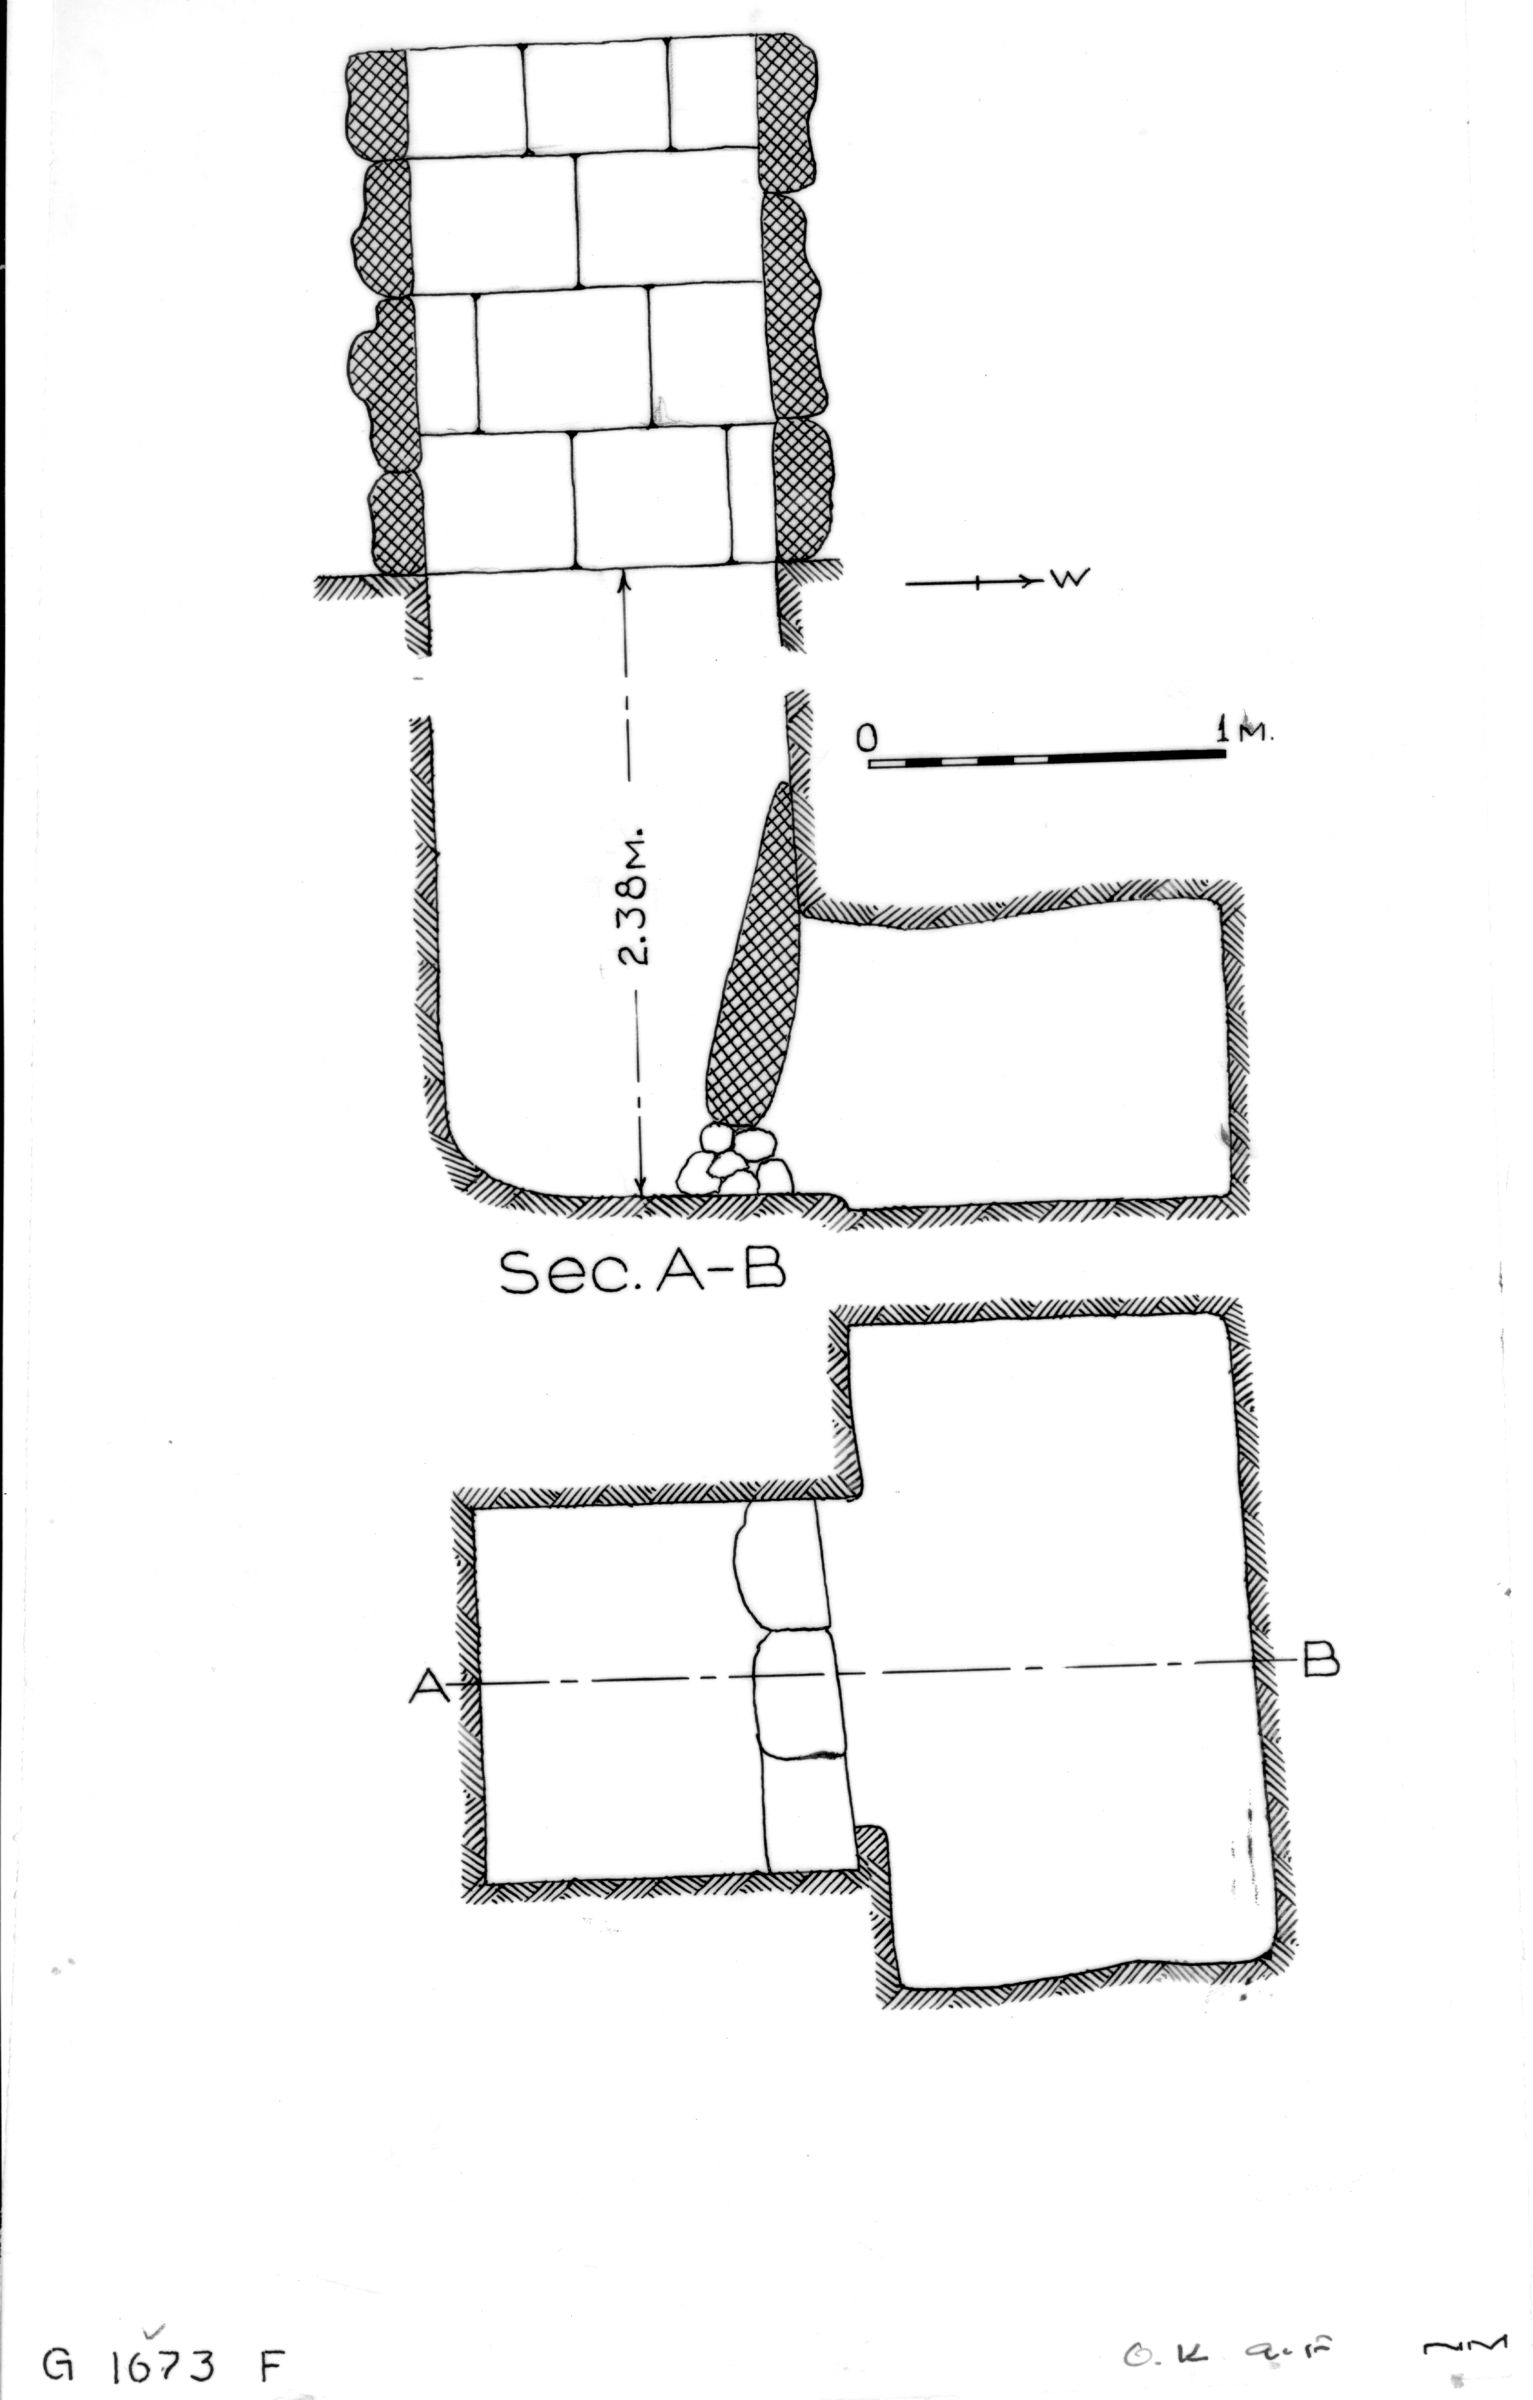 Maps and plans: G 1673, Shaft F